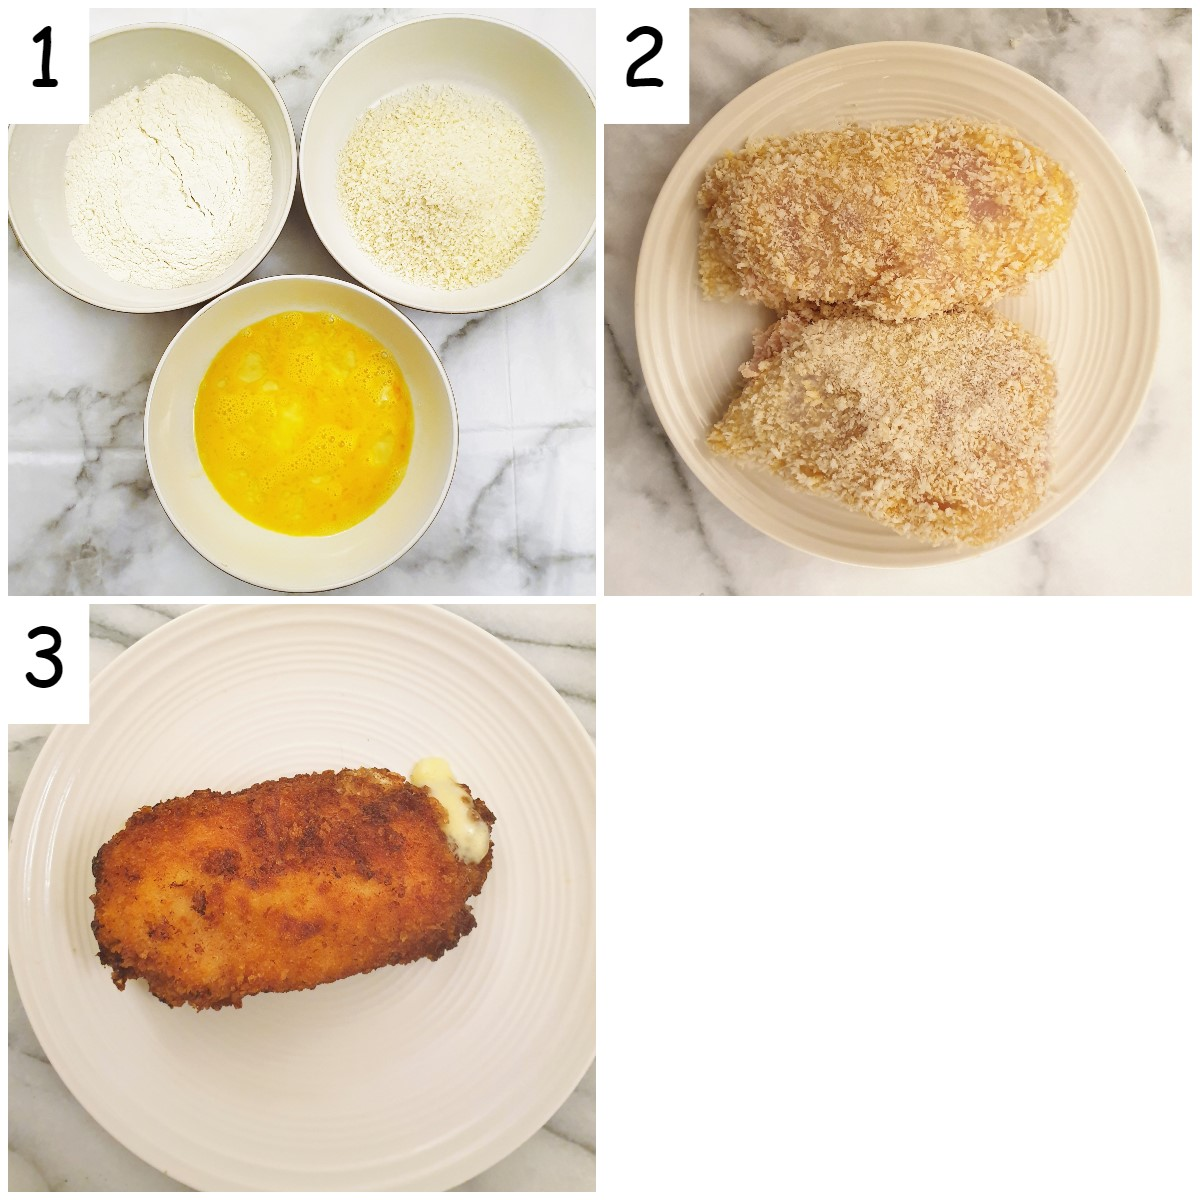 Steps for coating and frying the chicken.